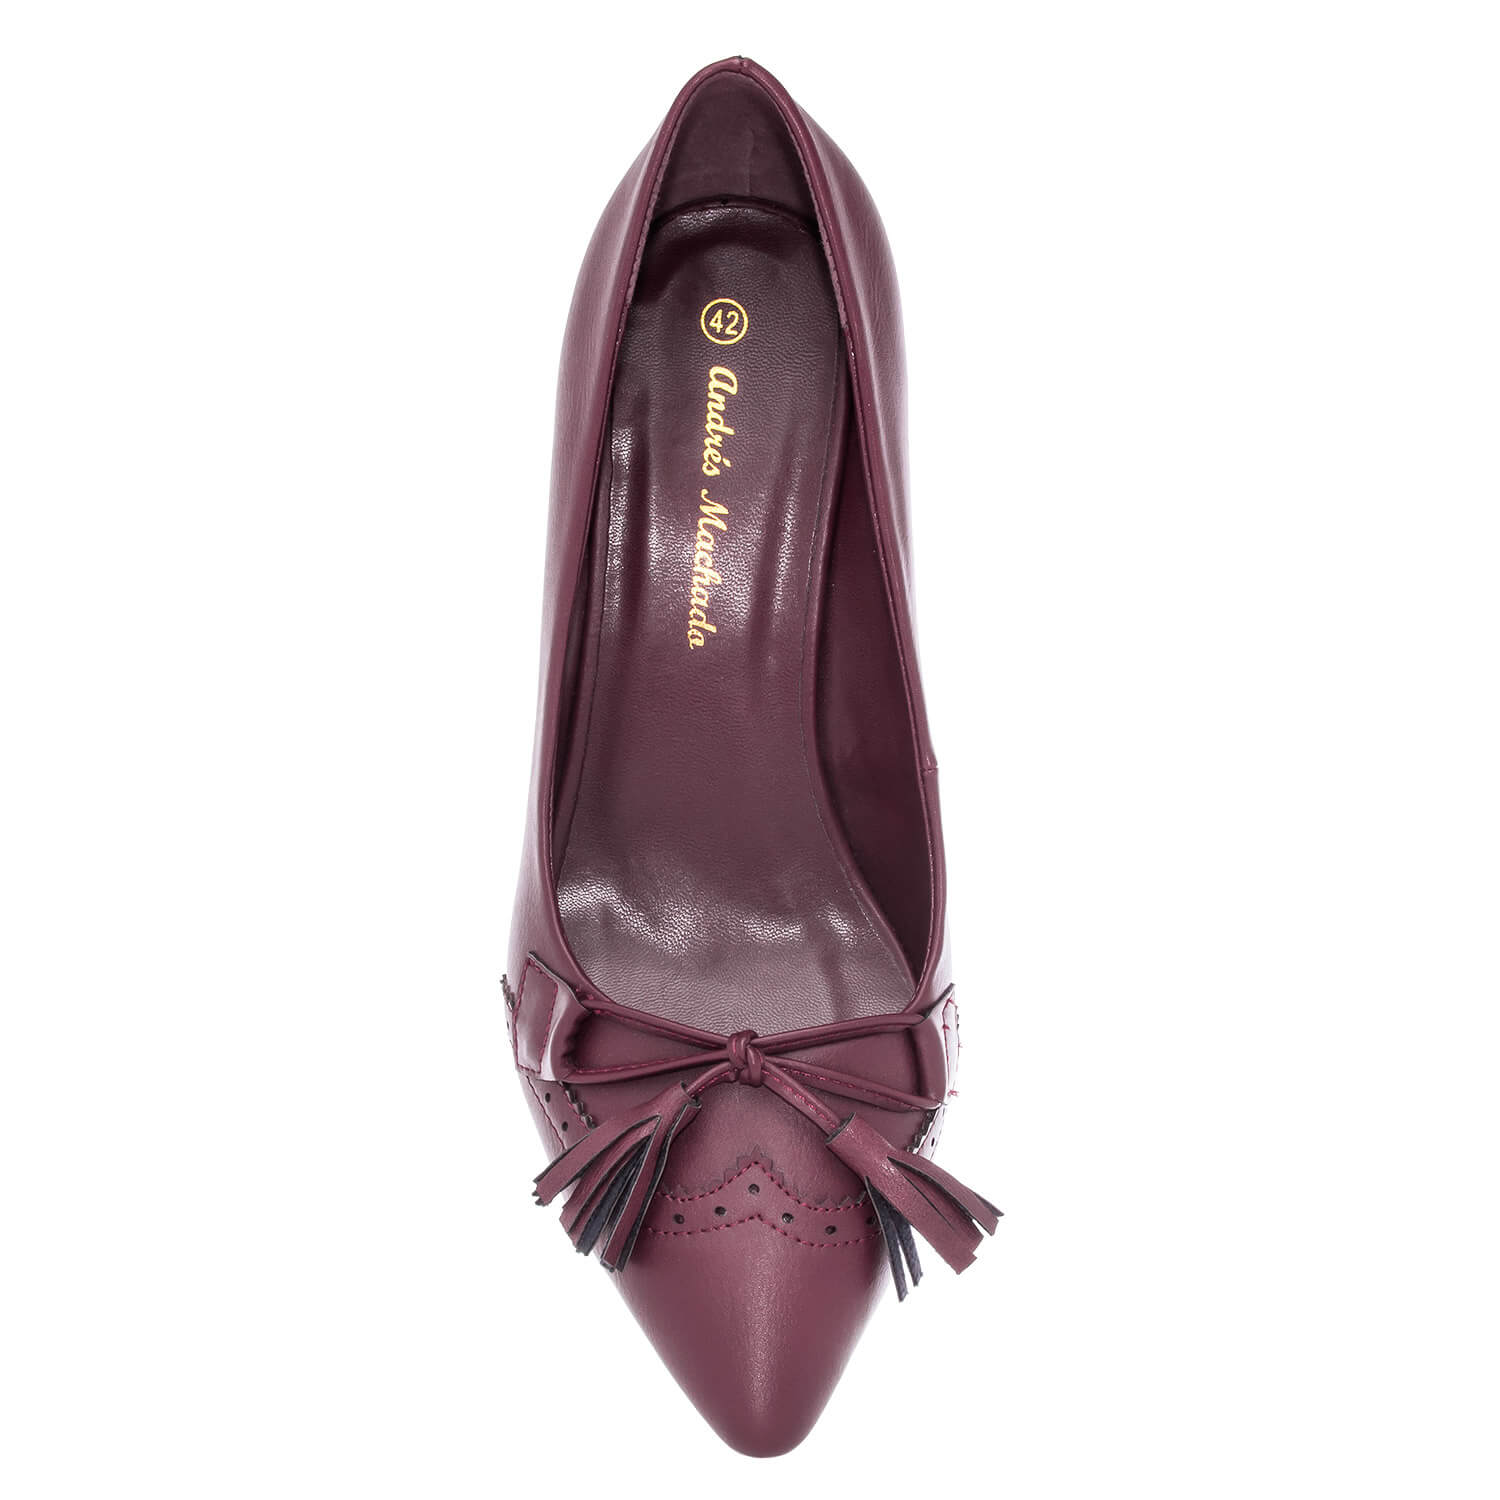 Tassle Pumps in Burgundy faux Leather